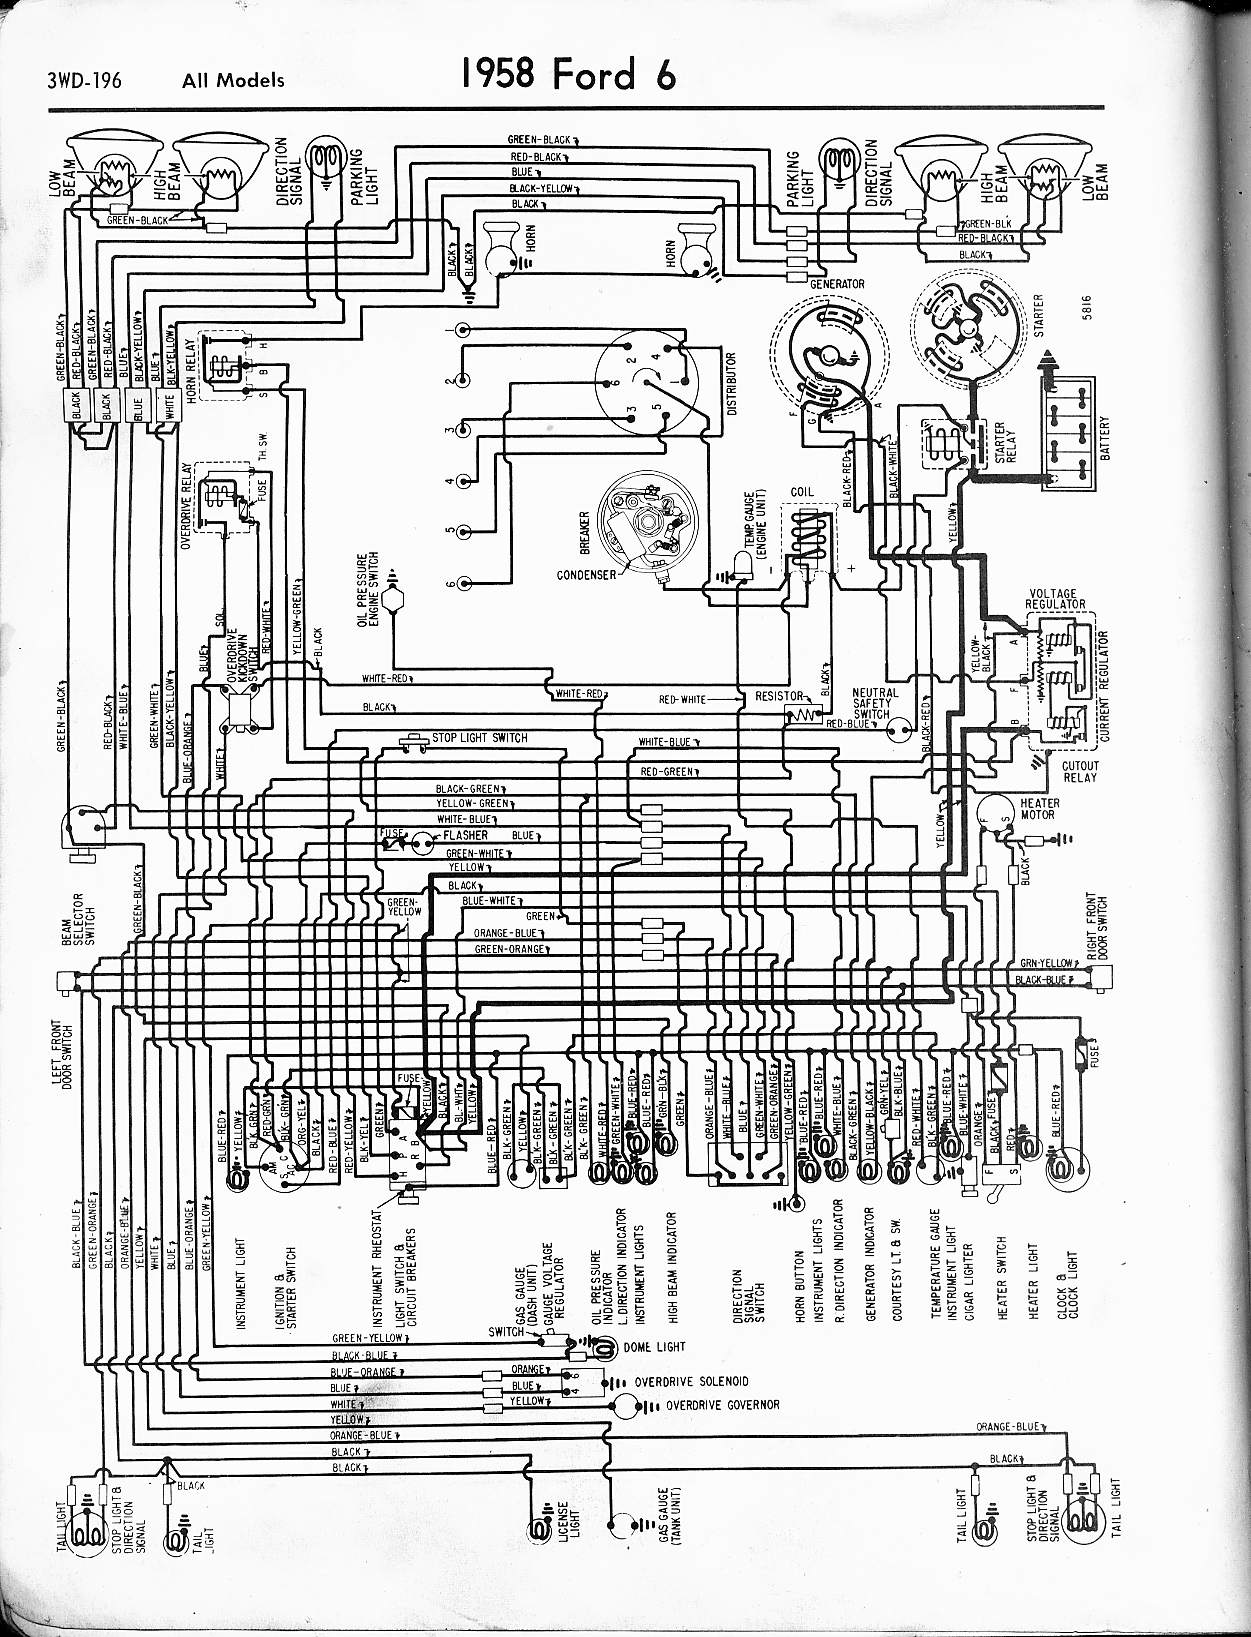 MWire5765 196 2001 ford explorer steering column diagram wiring diagram